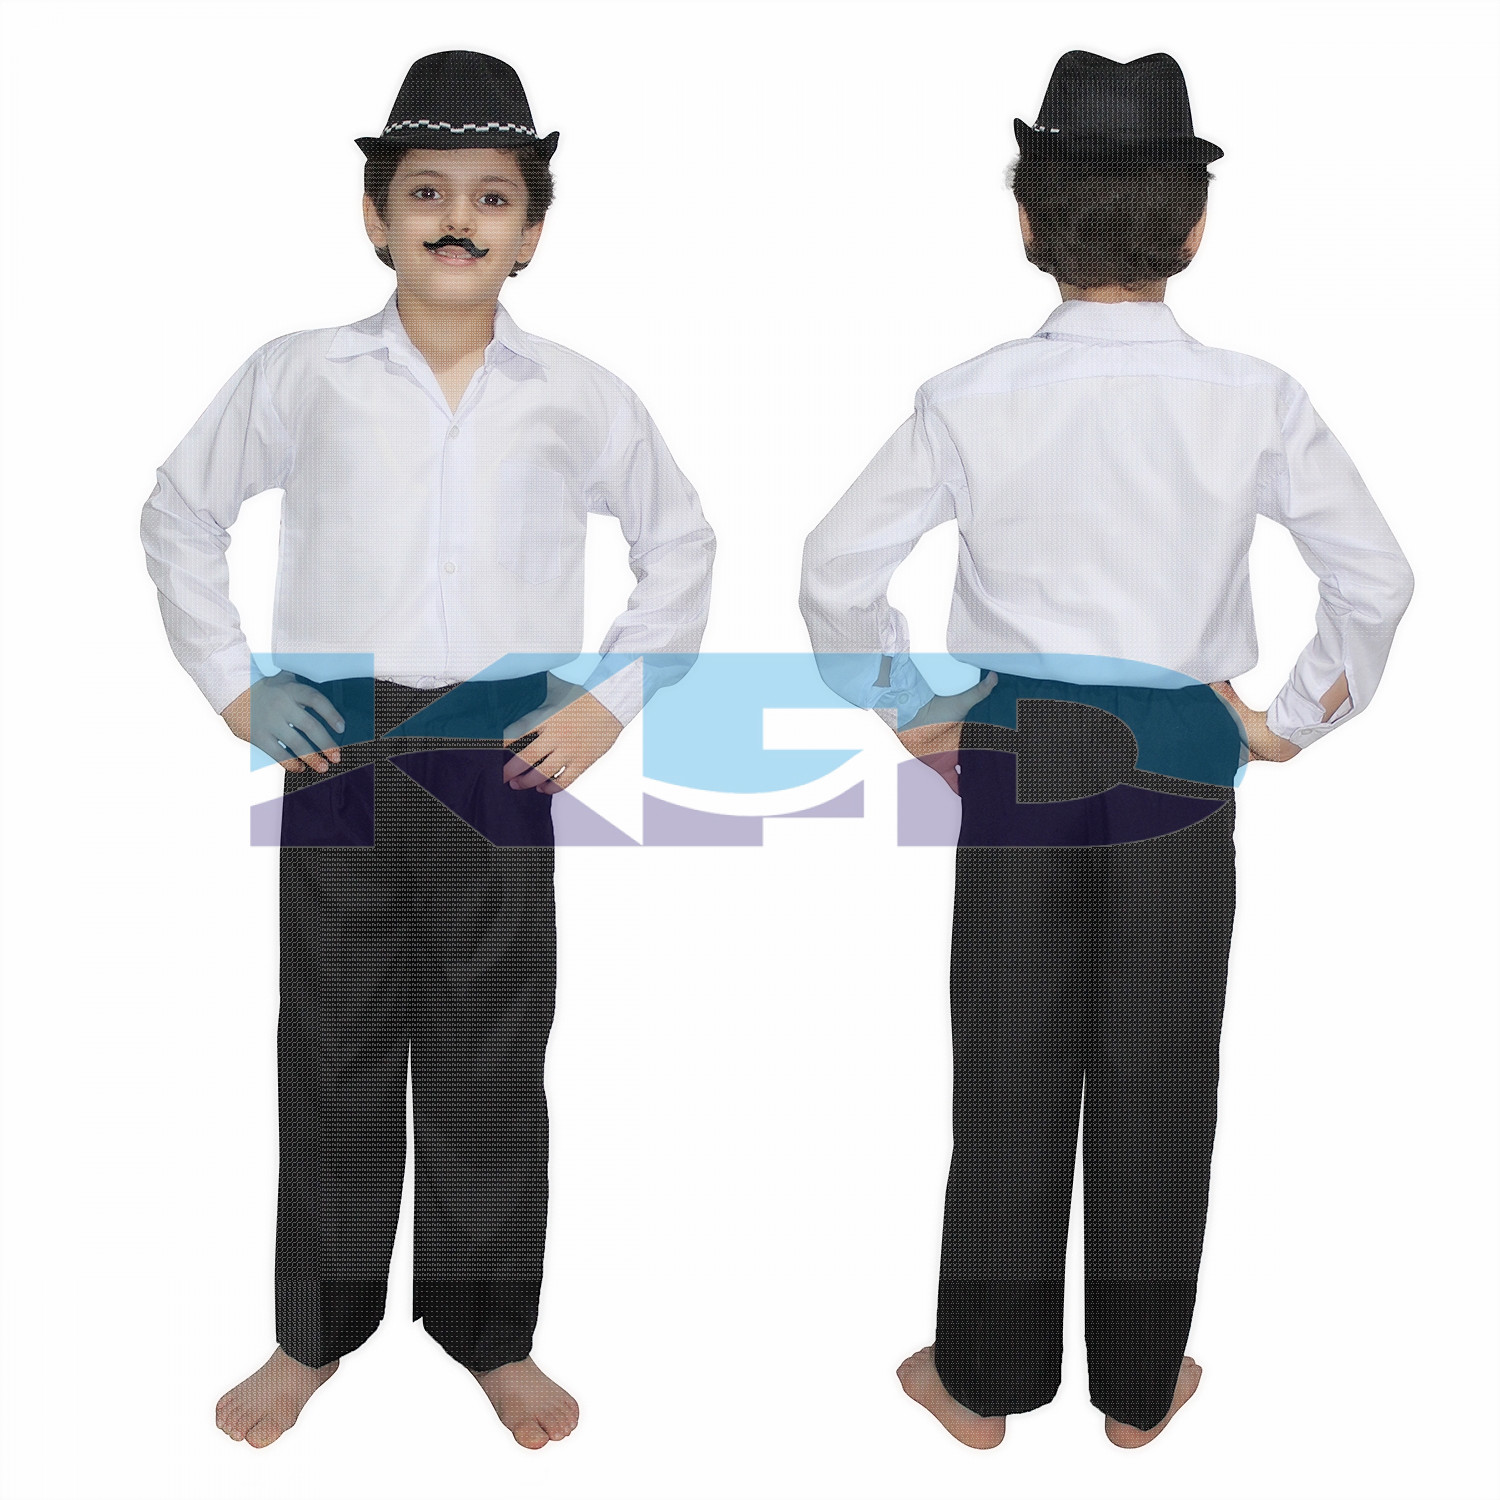 Bhagat Singh fancy dress for kids,National Hero/freedom figter Costume for Independence Day/Republic Day/Annual function/Theme party/Competition/Stage Shows Dress